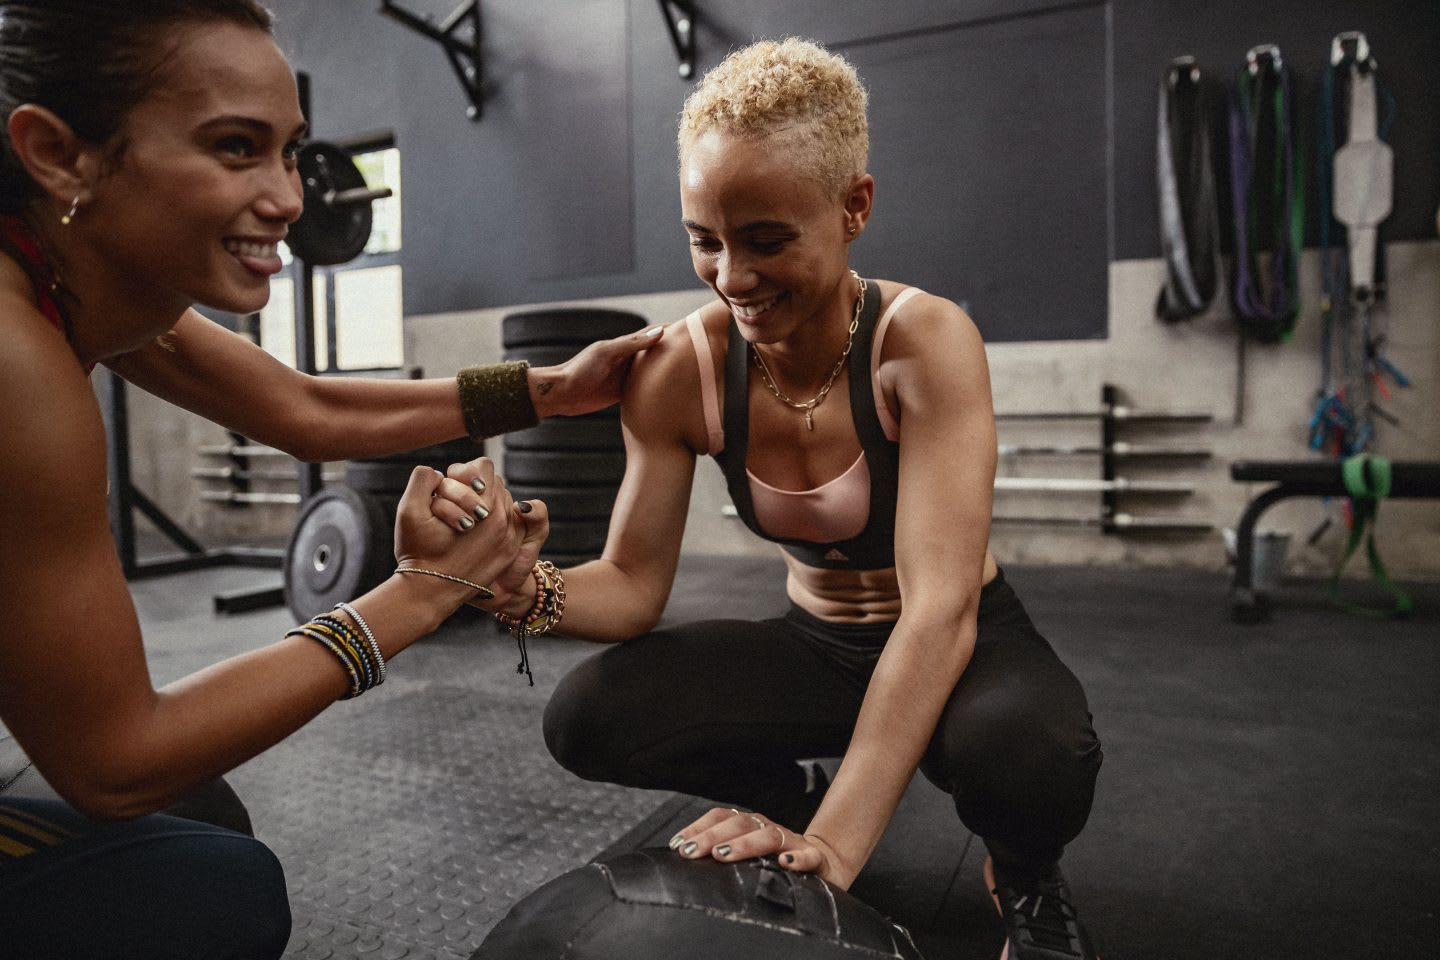 Woman lends support to friend while training in a gym.